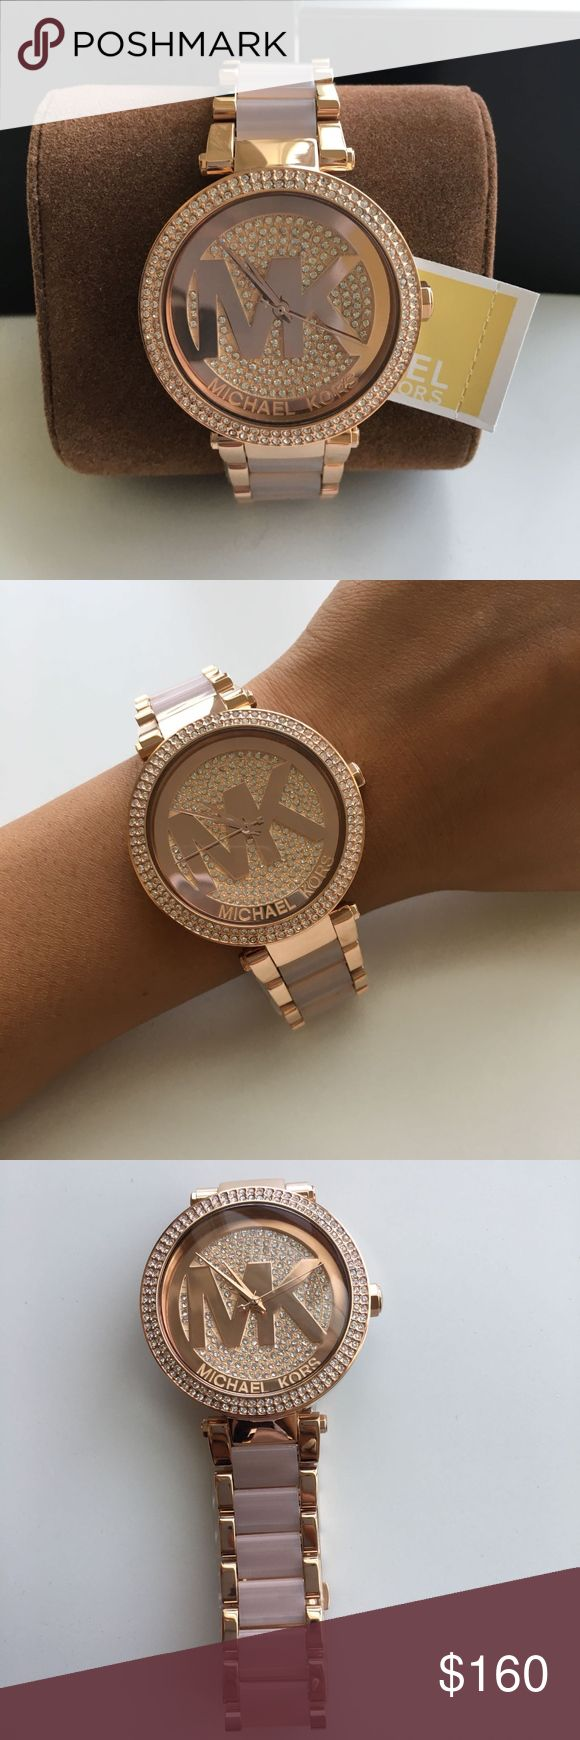 BRAND New Michael Kors Women's Watch MK6176 BRAND NEW MICHAEL KORS IN THE ORIGINAL BOX WITH THE TAG.  Parker Crystal Pave Log Dial Rose Gold-Tone Ladies Watch MK6176 Case Size : 39mm Michael Kors Accessories Watches